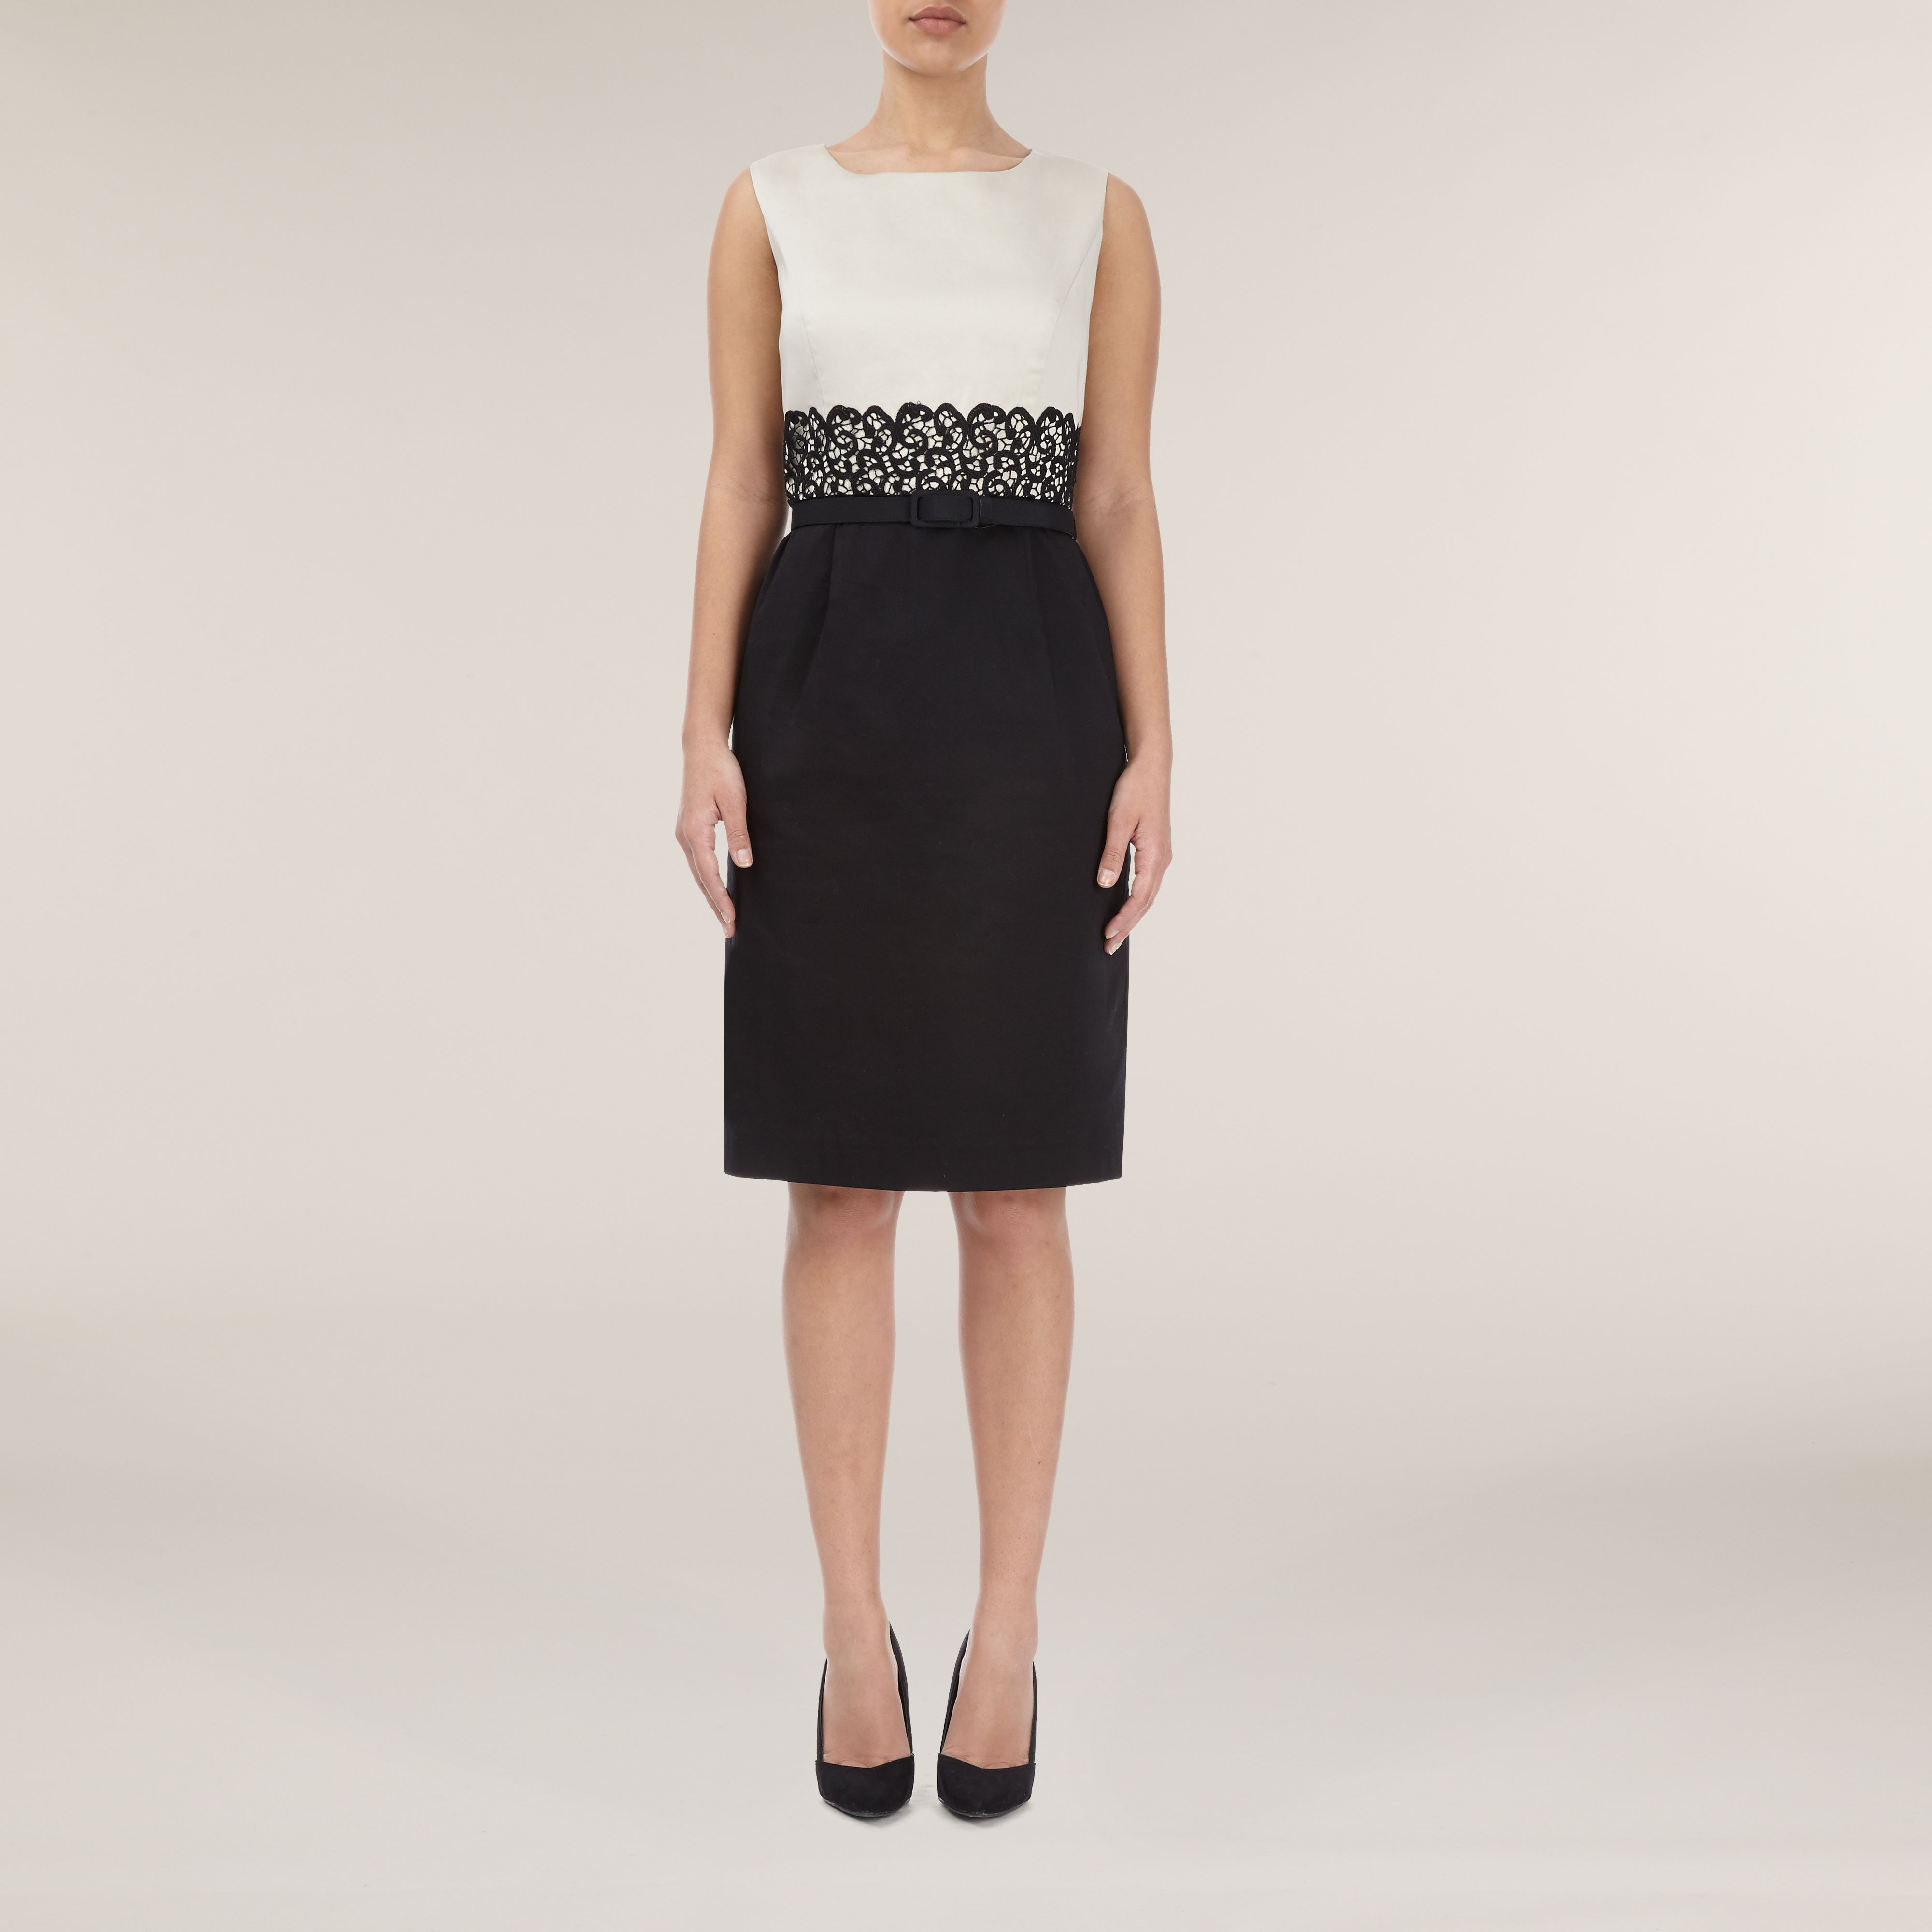 Black oyster shift dress